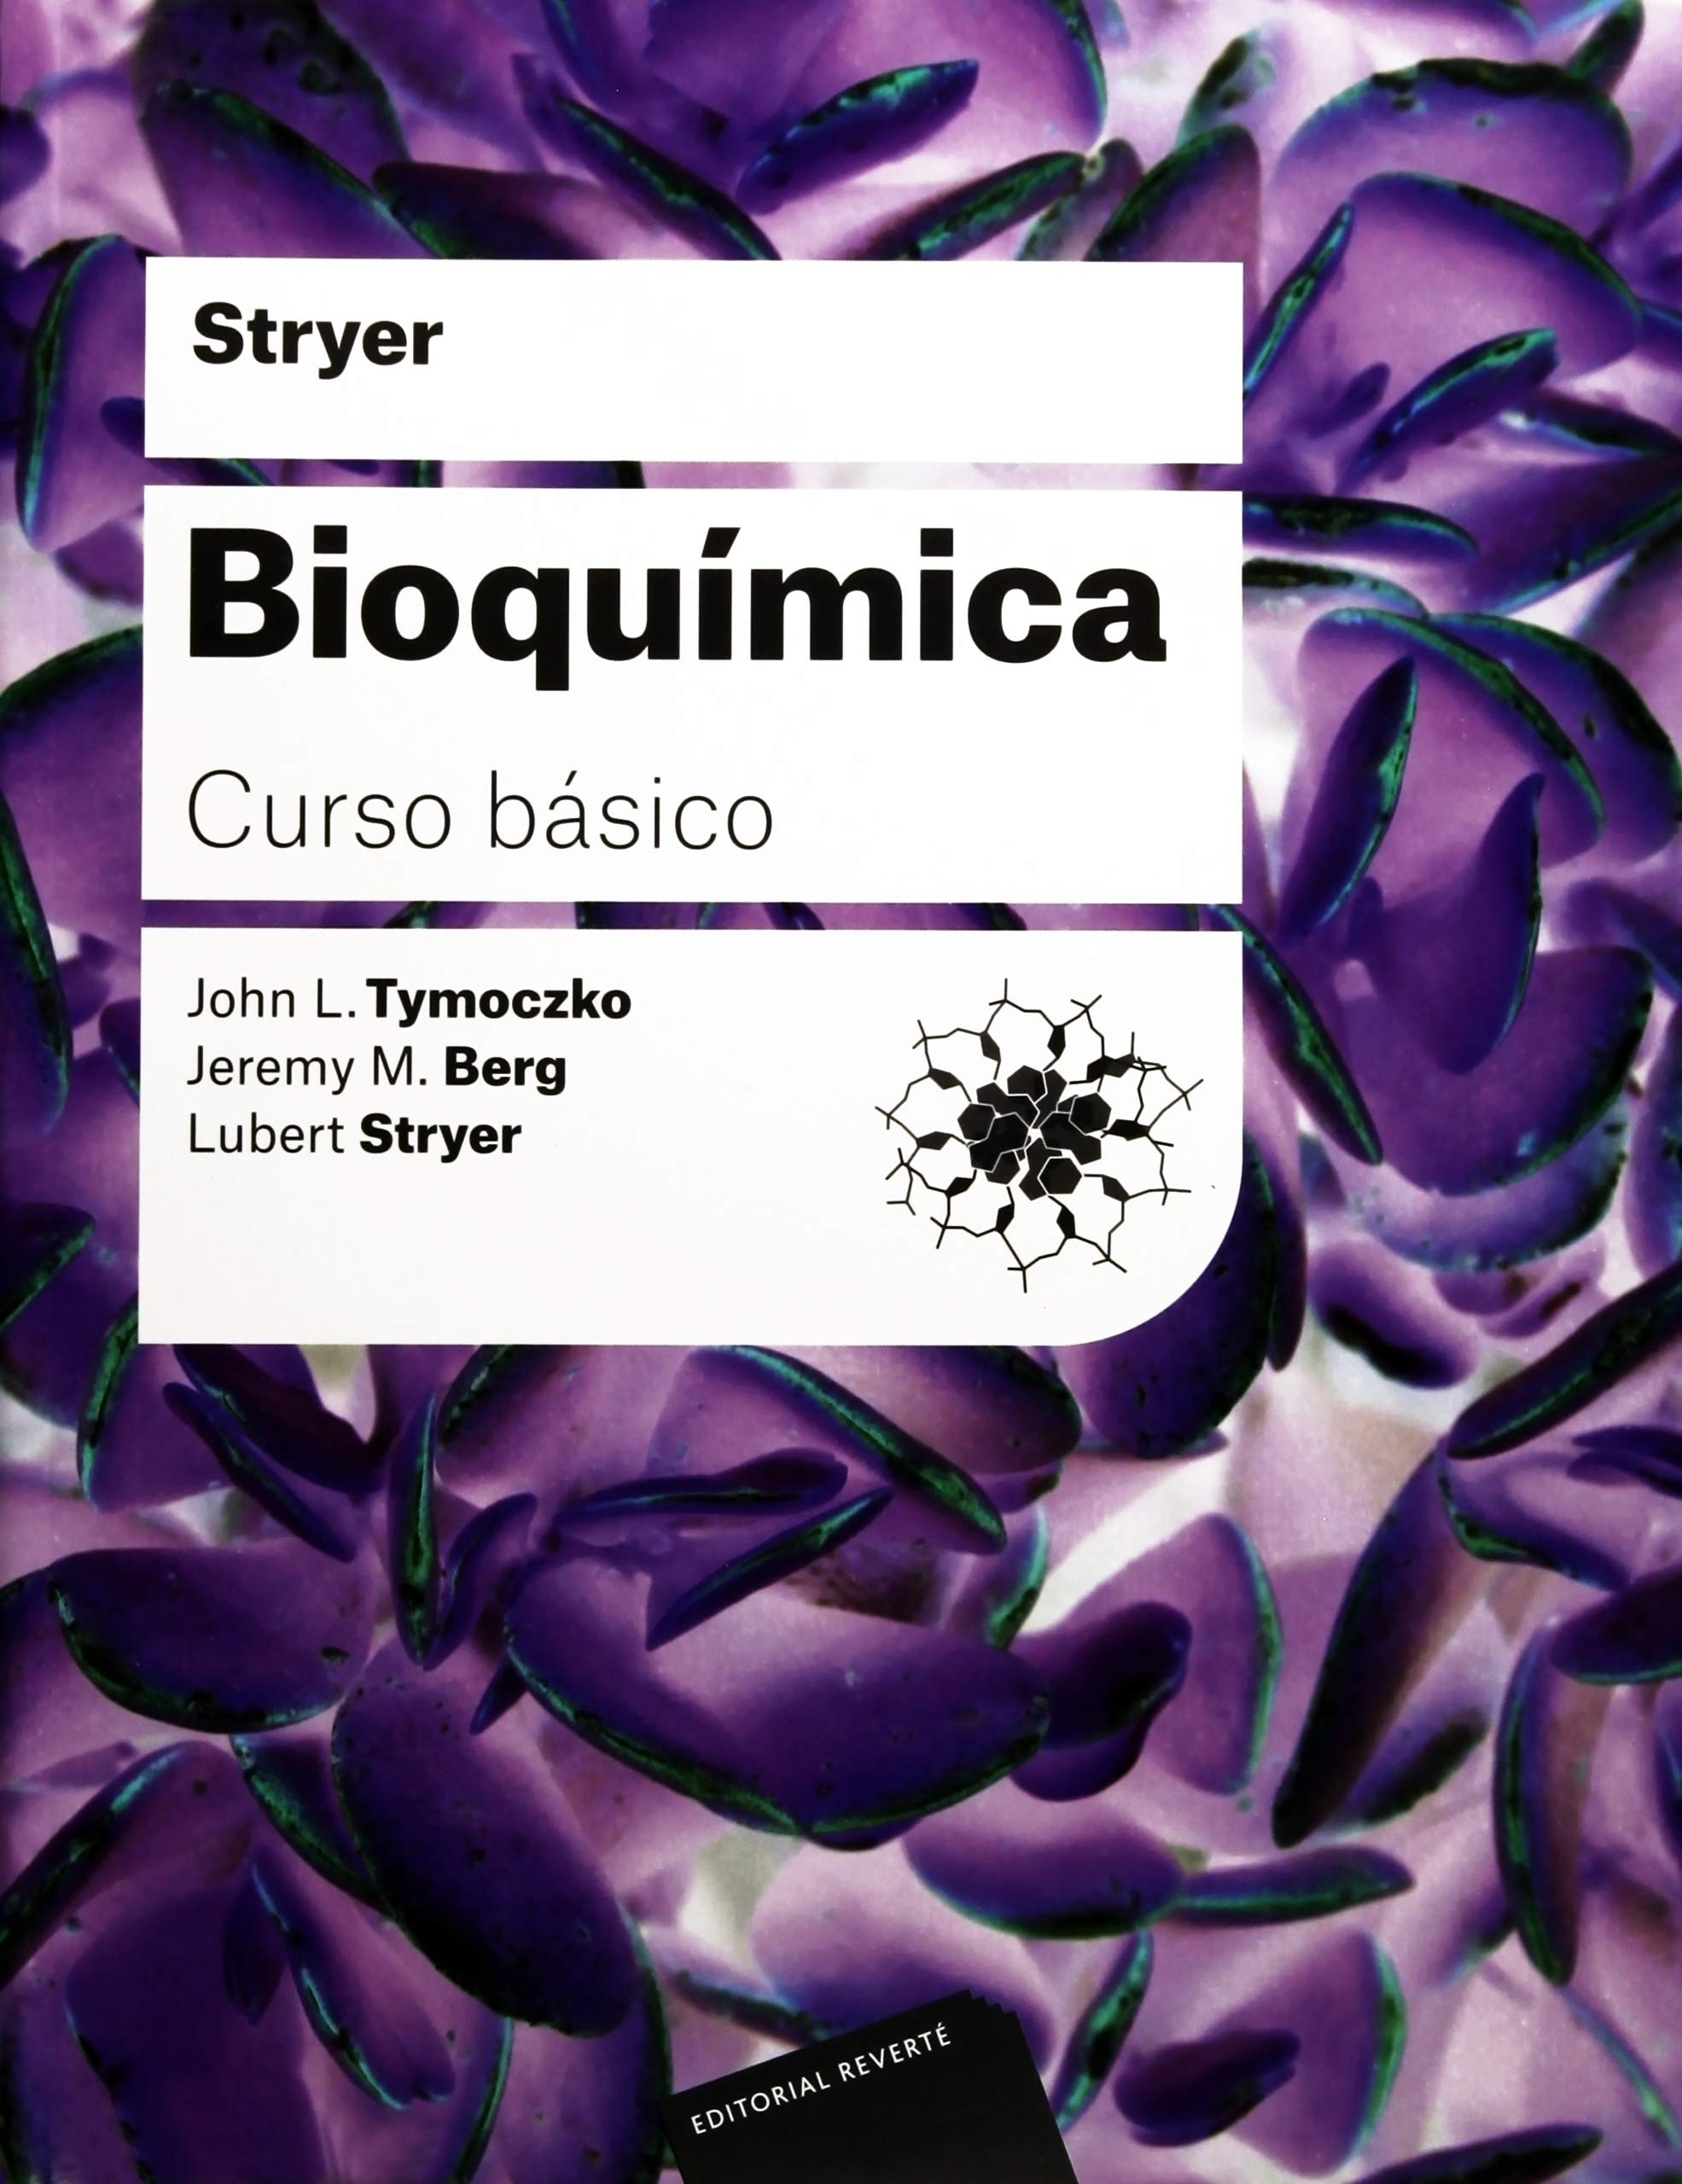 Bioquímica Curso Básico Amazon Co Uk Lubert L Stryer Jeremy M Berg John L Tymoczko 9788429176032 Books